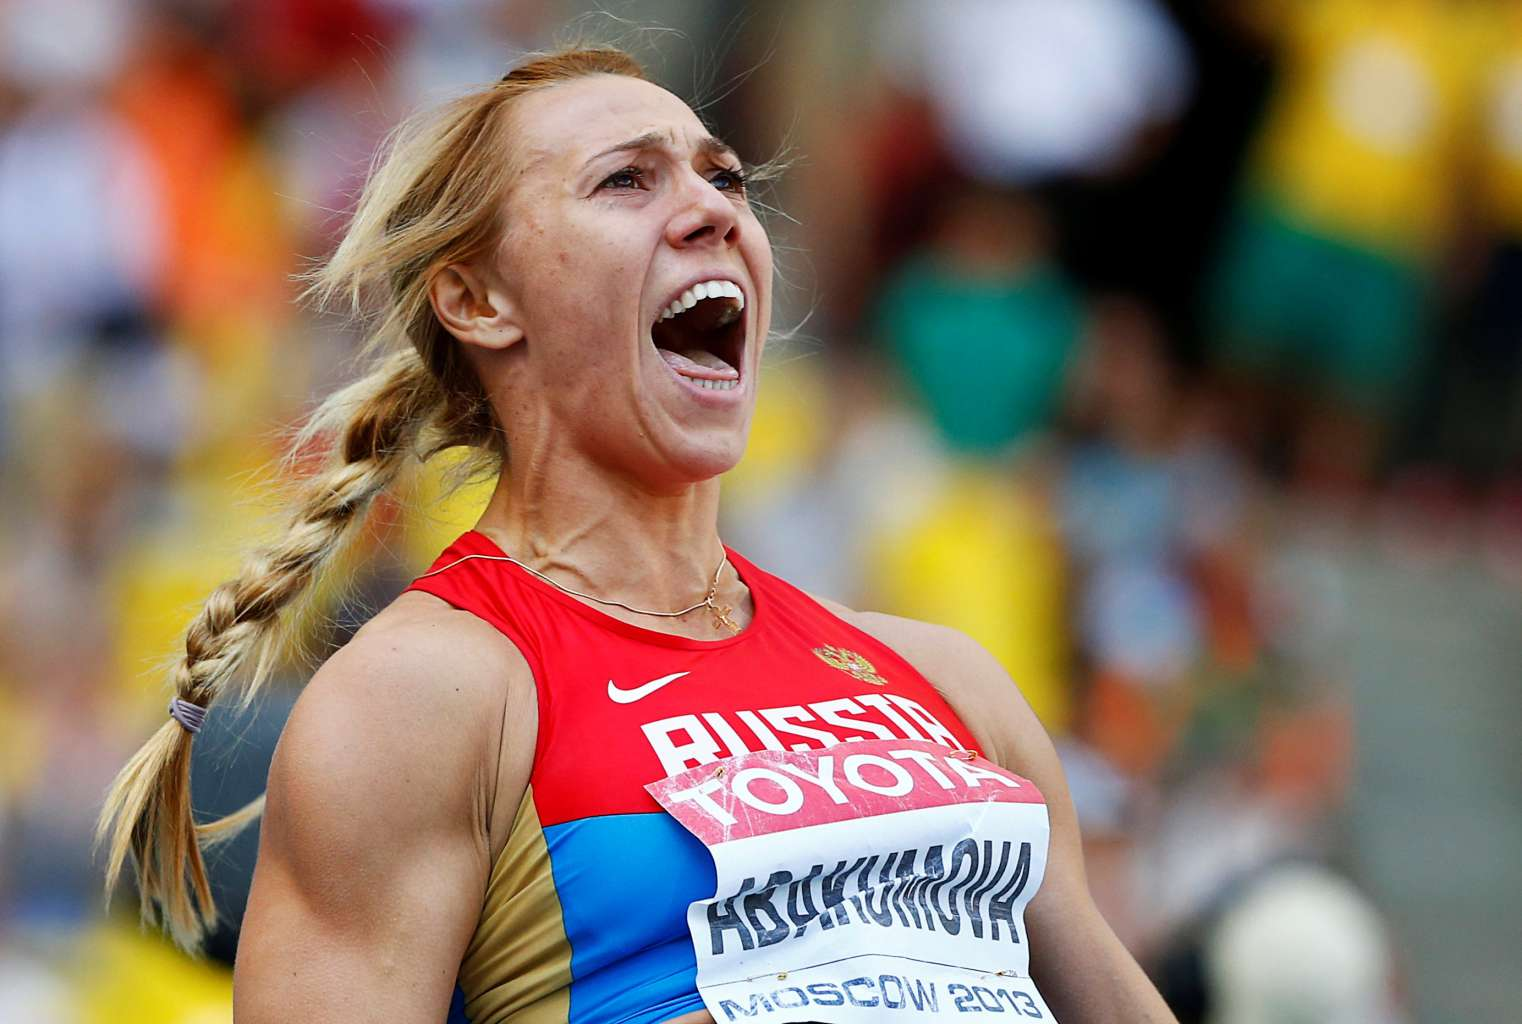 Maria Abakumova has been stripped of worlds title 2011 for doping